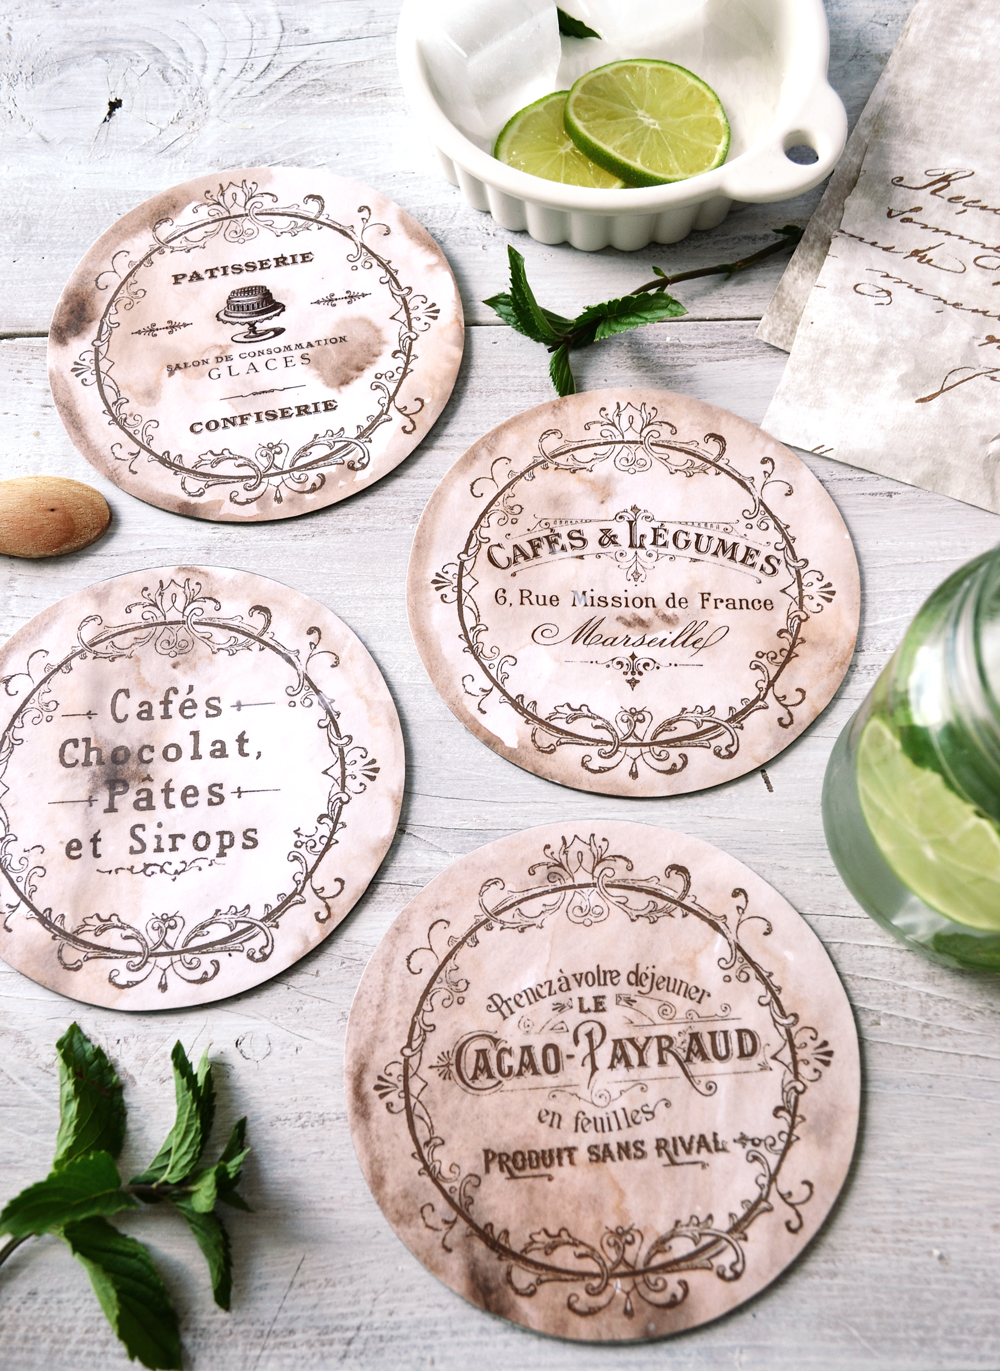 Don't throw your old CDs anymore and recycle them into some beautiful DIY Vintage French CD Coasters, perfect for summer entertaining or gifting